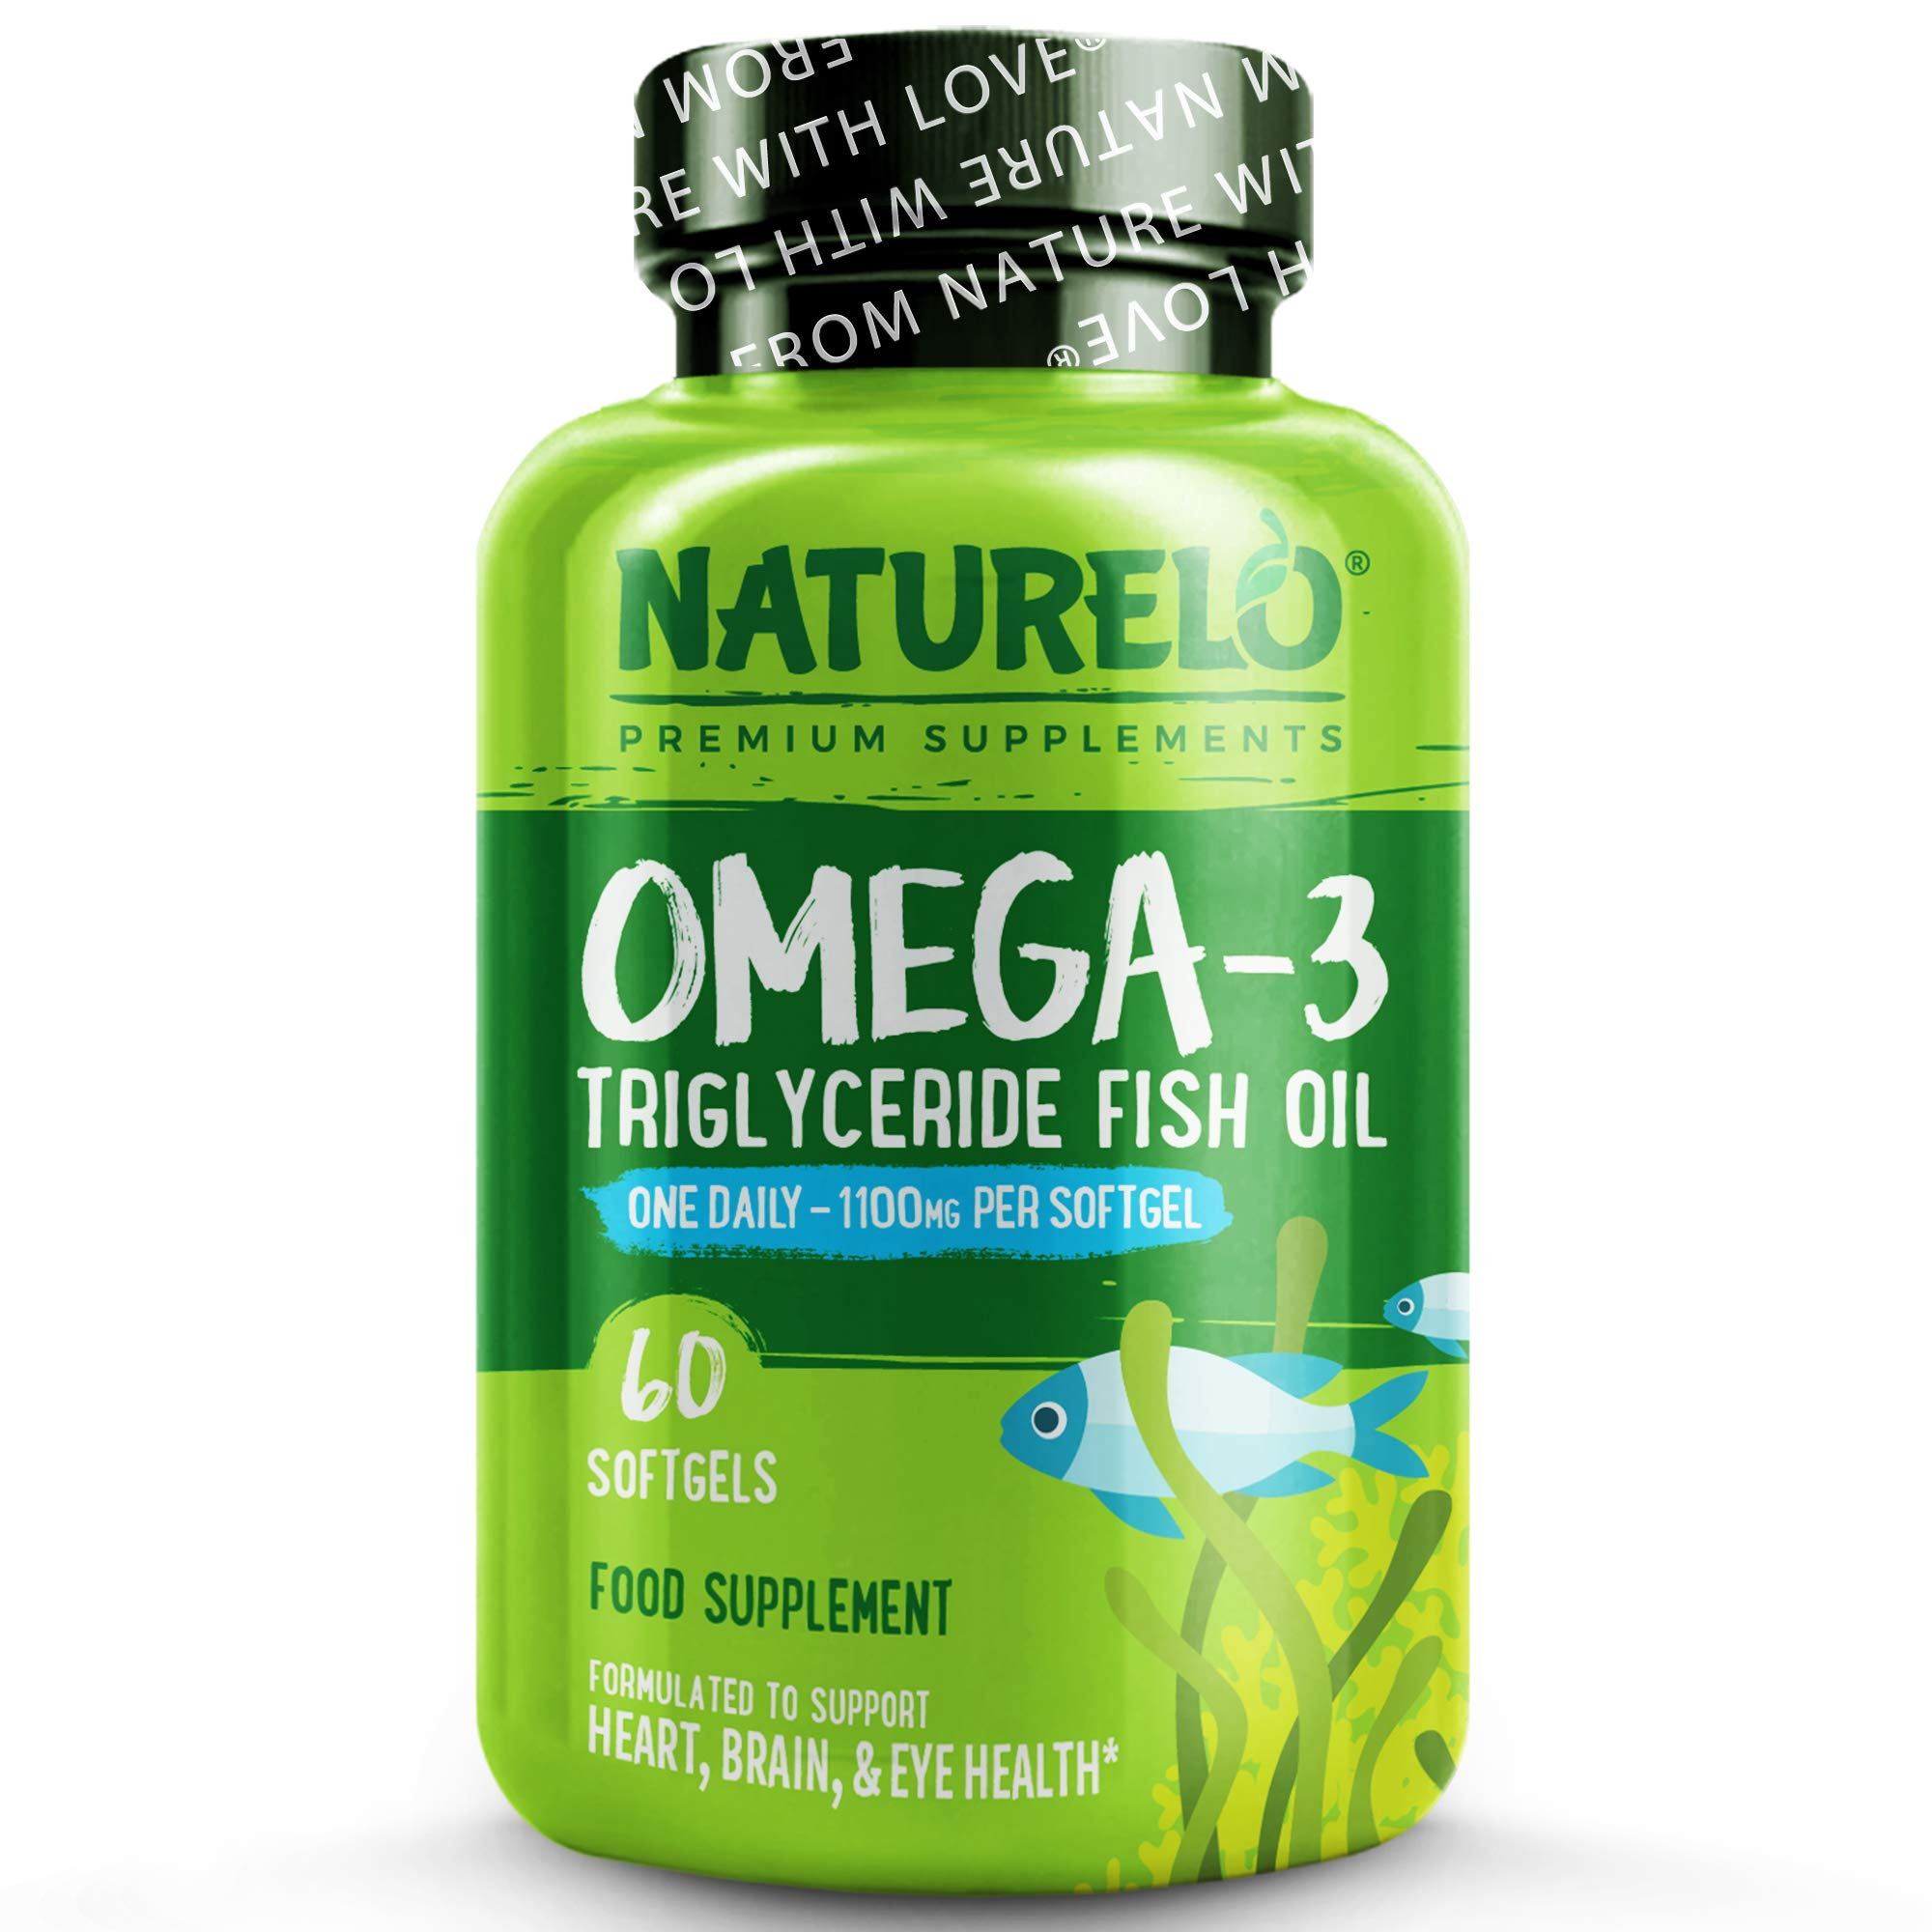 NATURELO Omega-3 Fish Oil - with EPA & DHA - 1100 mg Triglycerides Per Capsule - Best Supplement for Heart, Eye, Brain Health - No Burps - Lemon Flavour - One A Day - 60 Softgels | 2 Month Supply